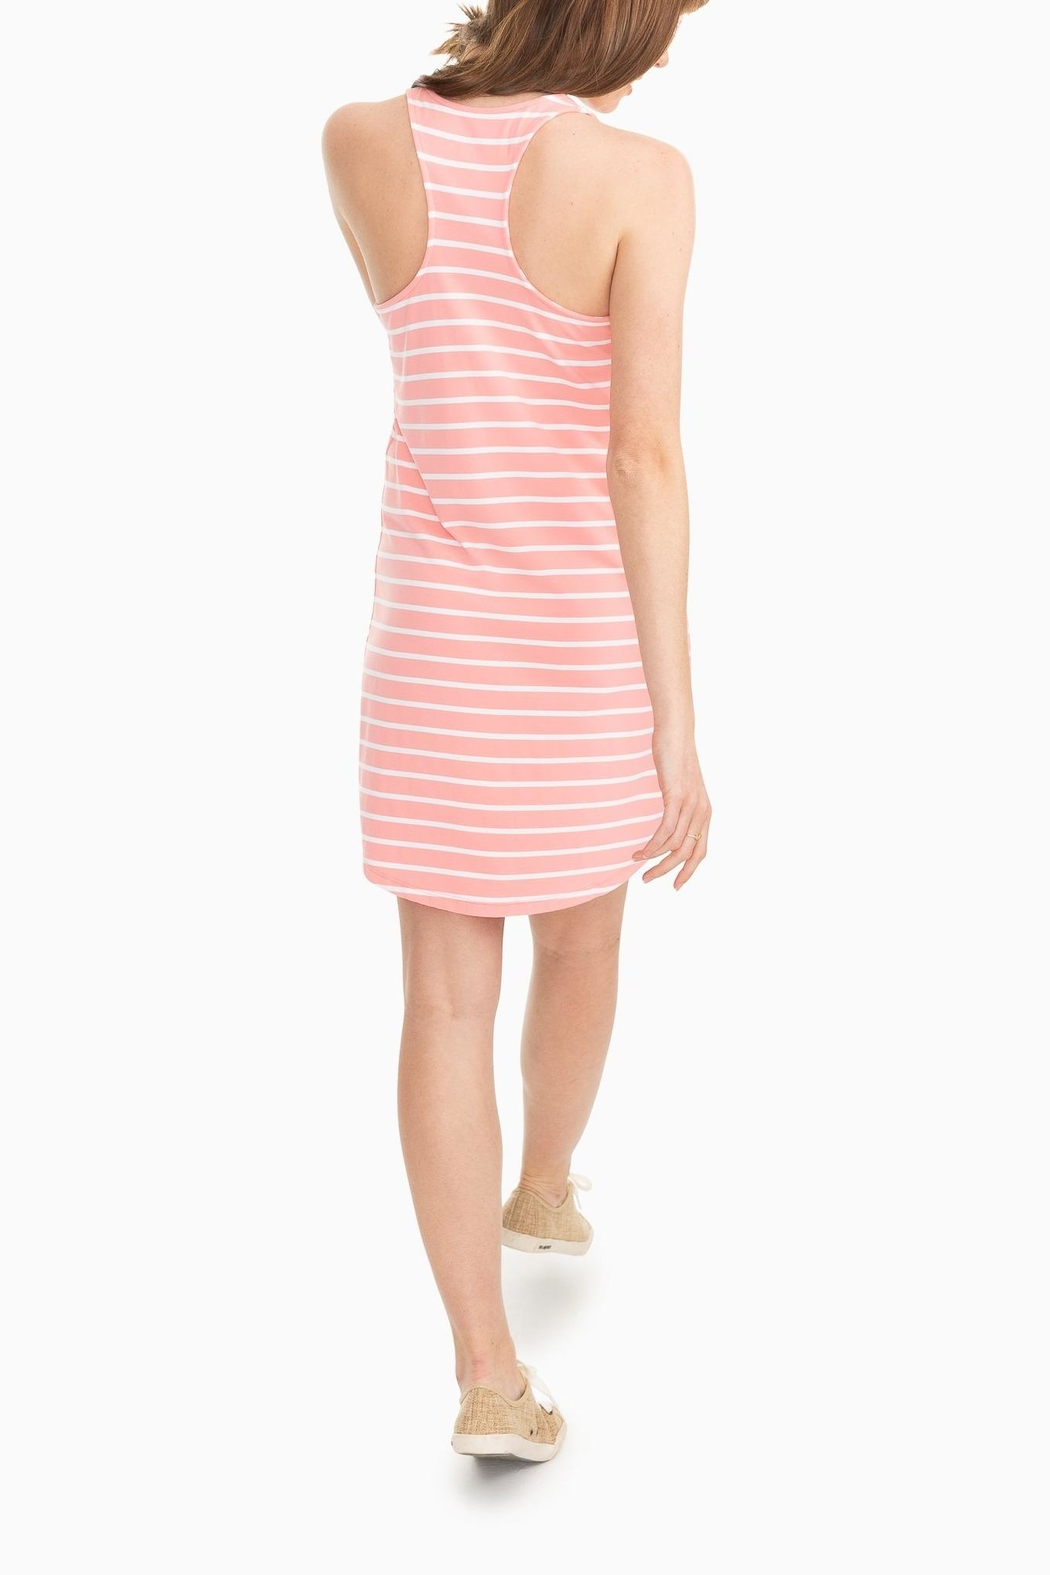 Southern Tide Reagan Performance Dress - Front Full Image